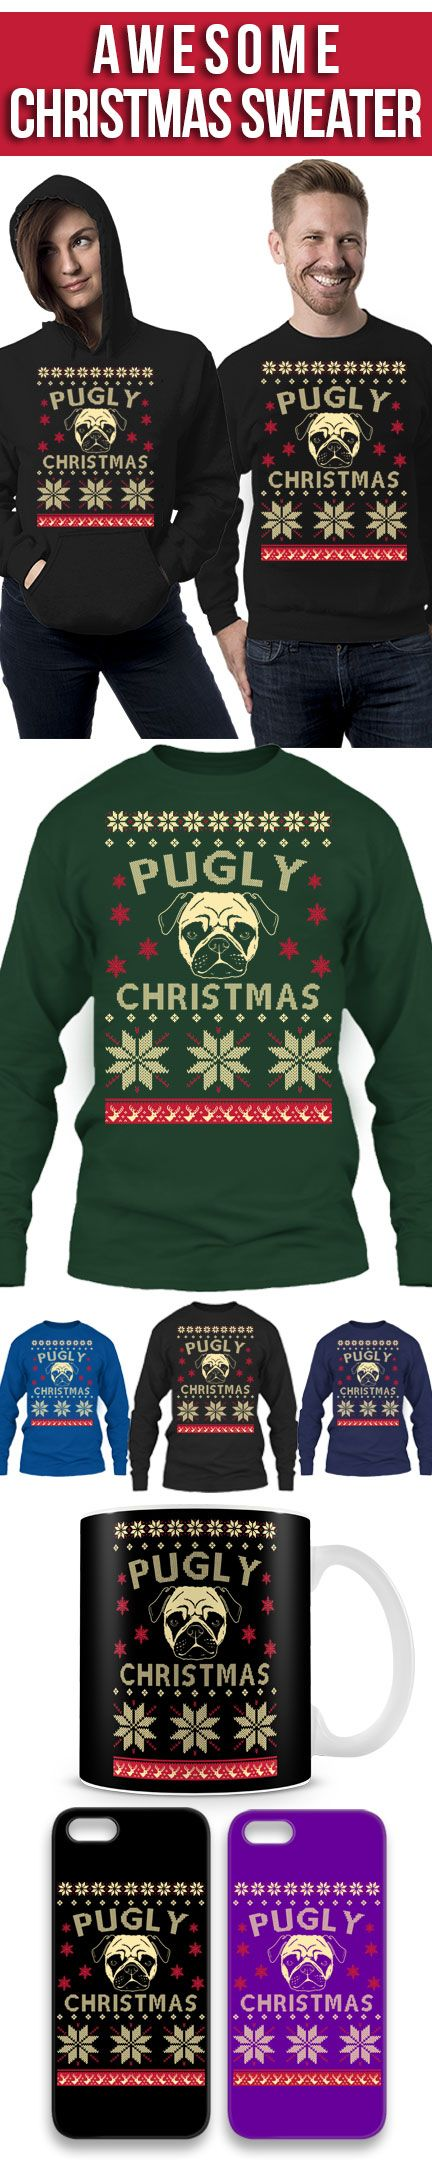 Pugly Ugly Christmas Sweater! Click The Image To Buy It Now or Tag Someone You Want To Buy This For. #pug